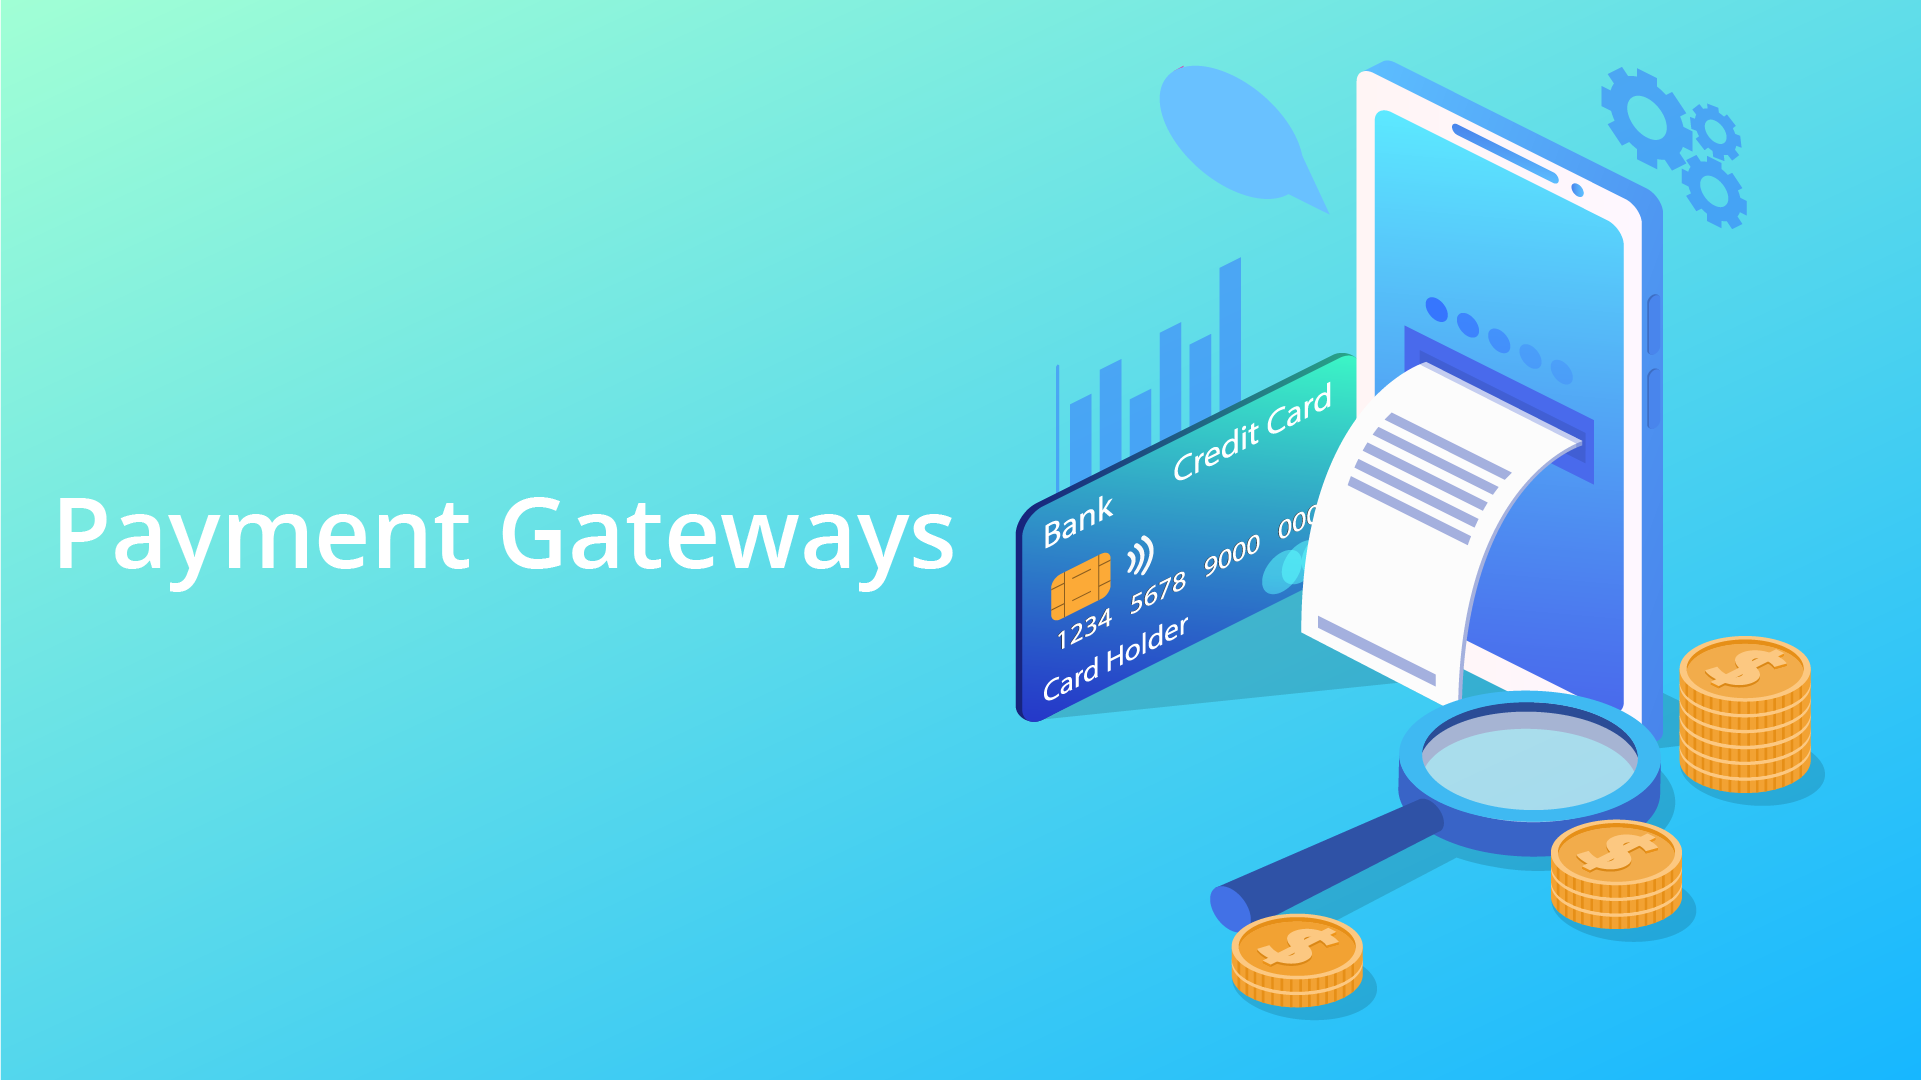 Online Credit Card Processing Payment Gateway Credit Card Benefits Online Business